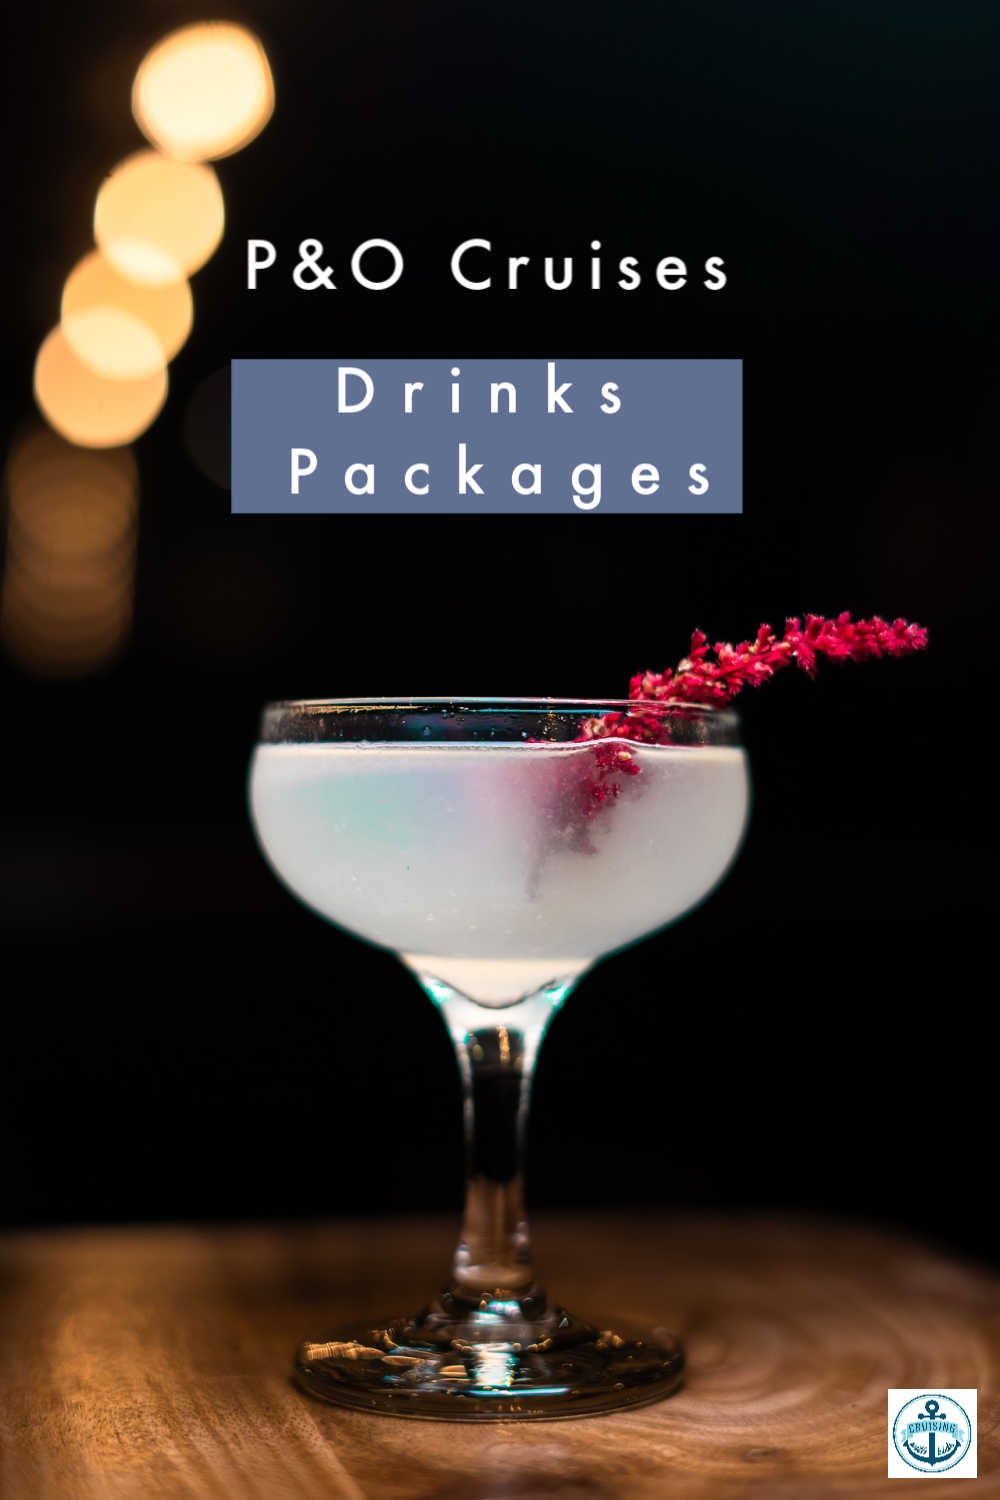 Whats included in the drinks package for P&O Cruises Including premier drinks package, non alcoholic drinks package, kids drink package and coffee drinks package  Drinks menus with drinks prices